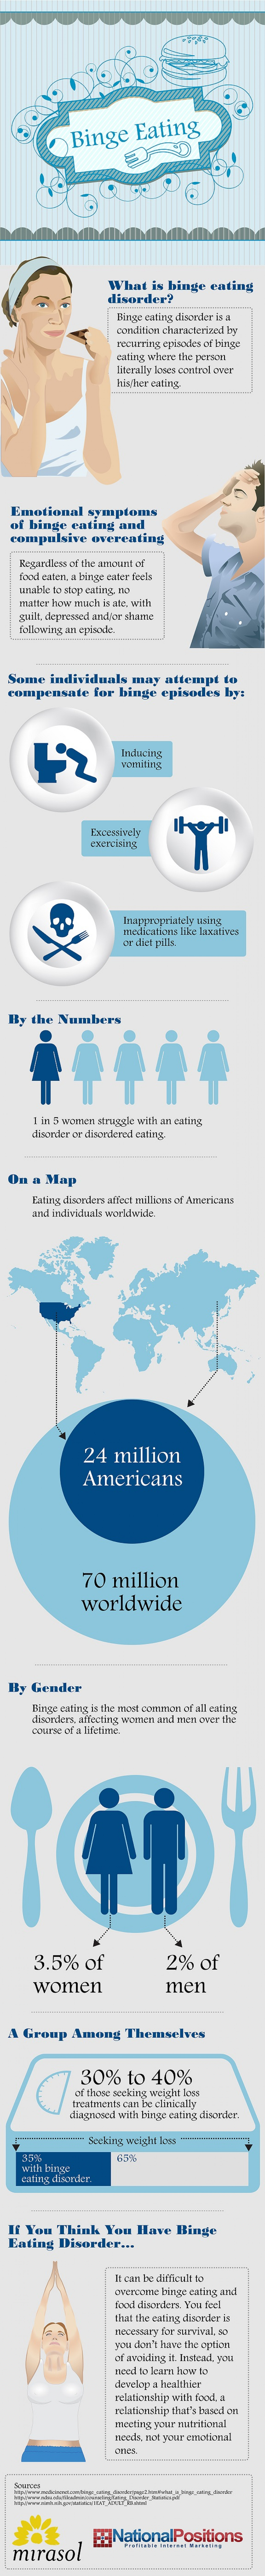 Binge Eating Infographic